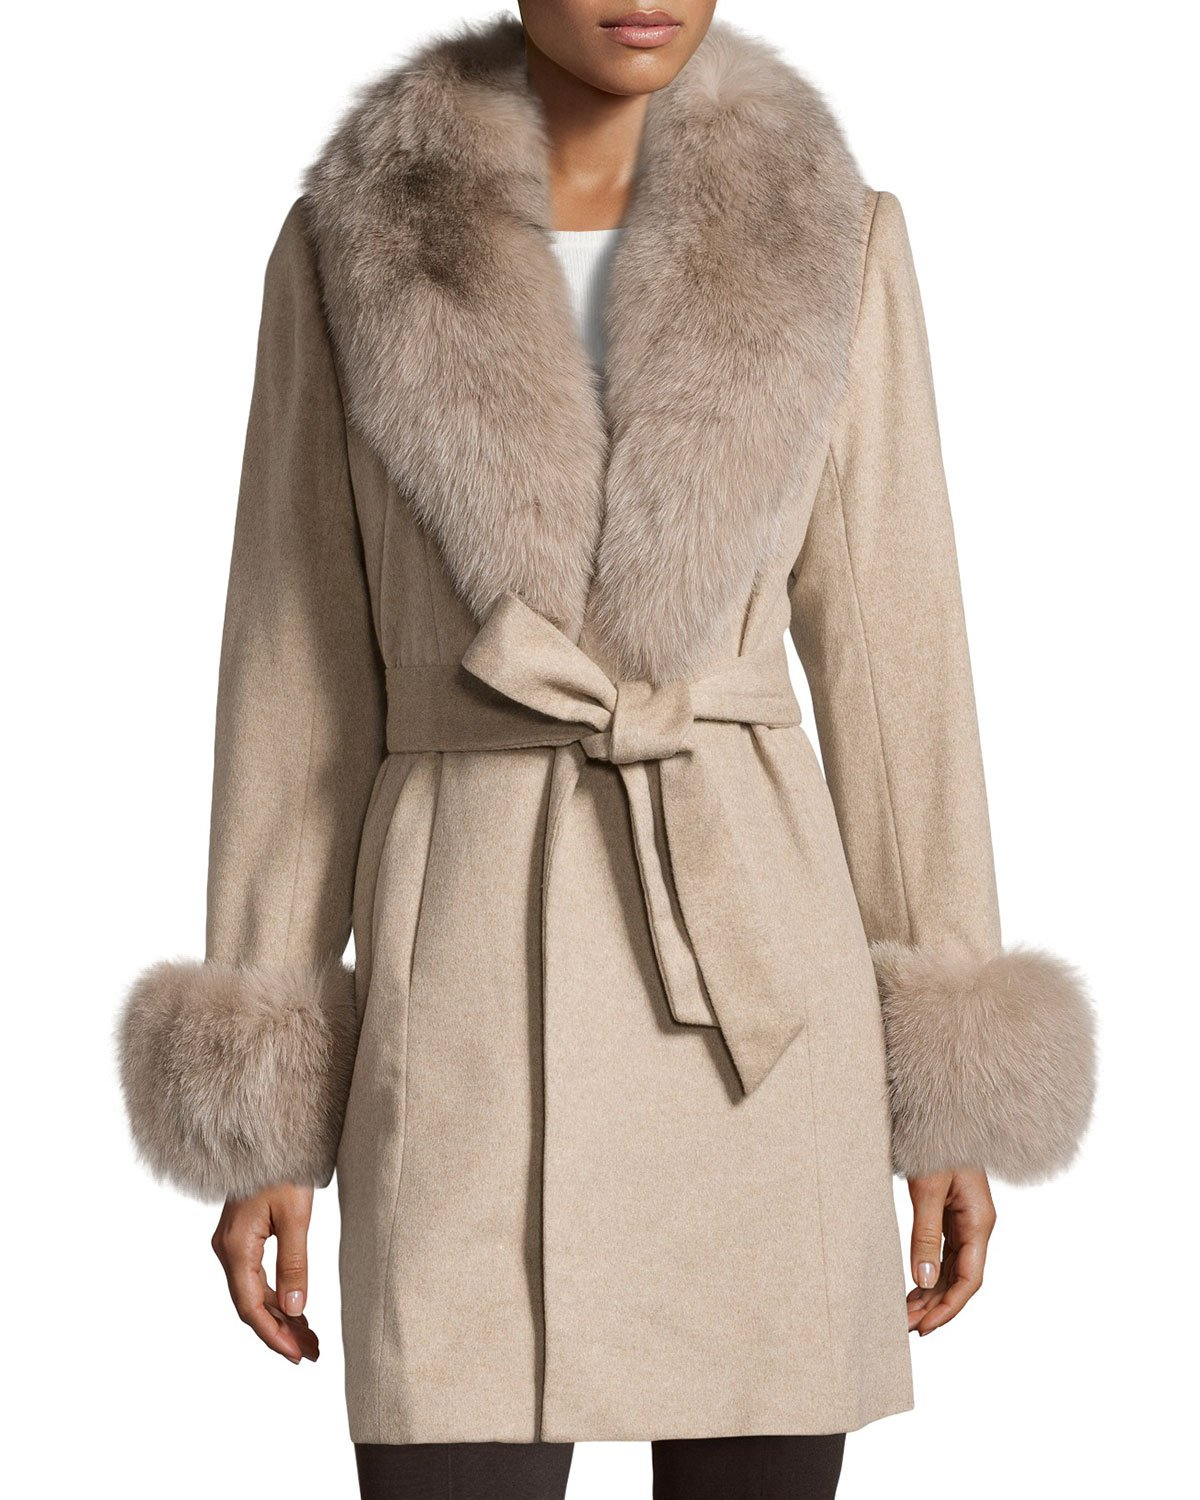 Belle fare Fur-Trimmed Cashmere Wrap Coat in Natural | Lyst